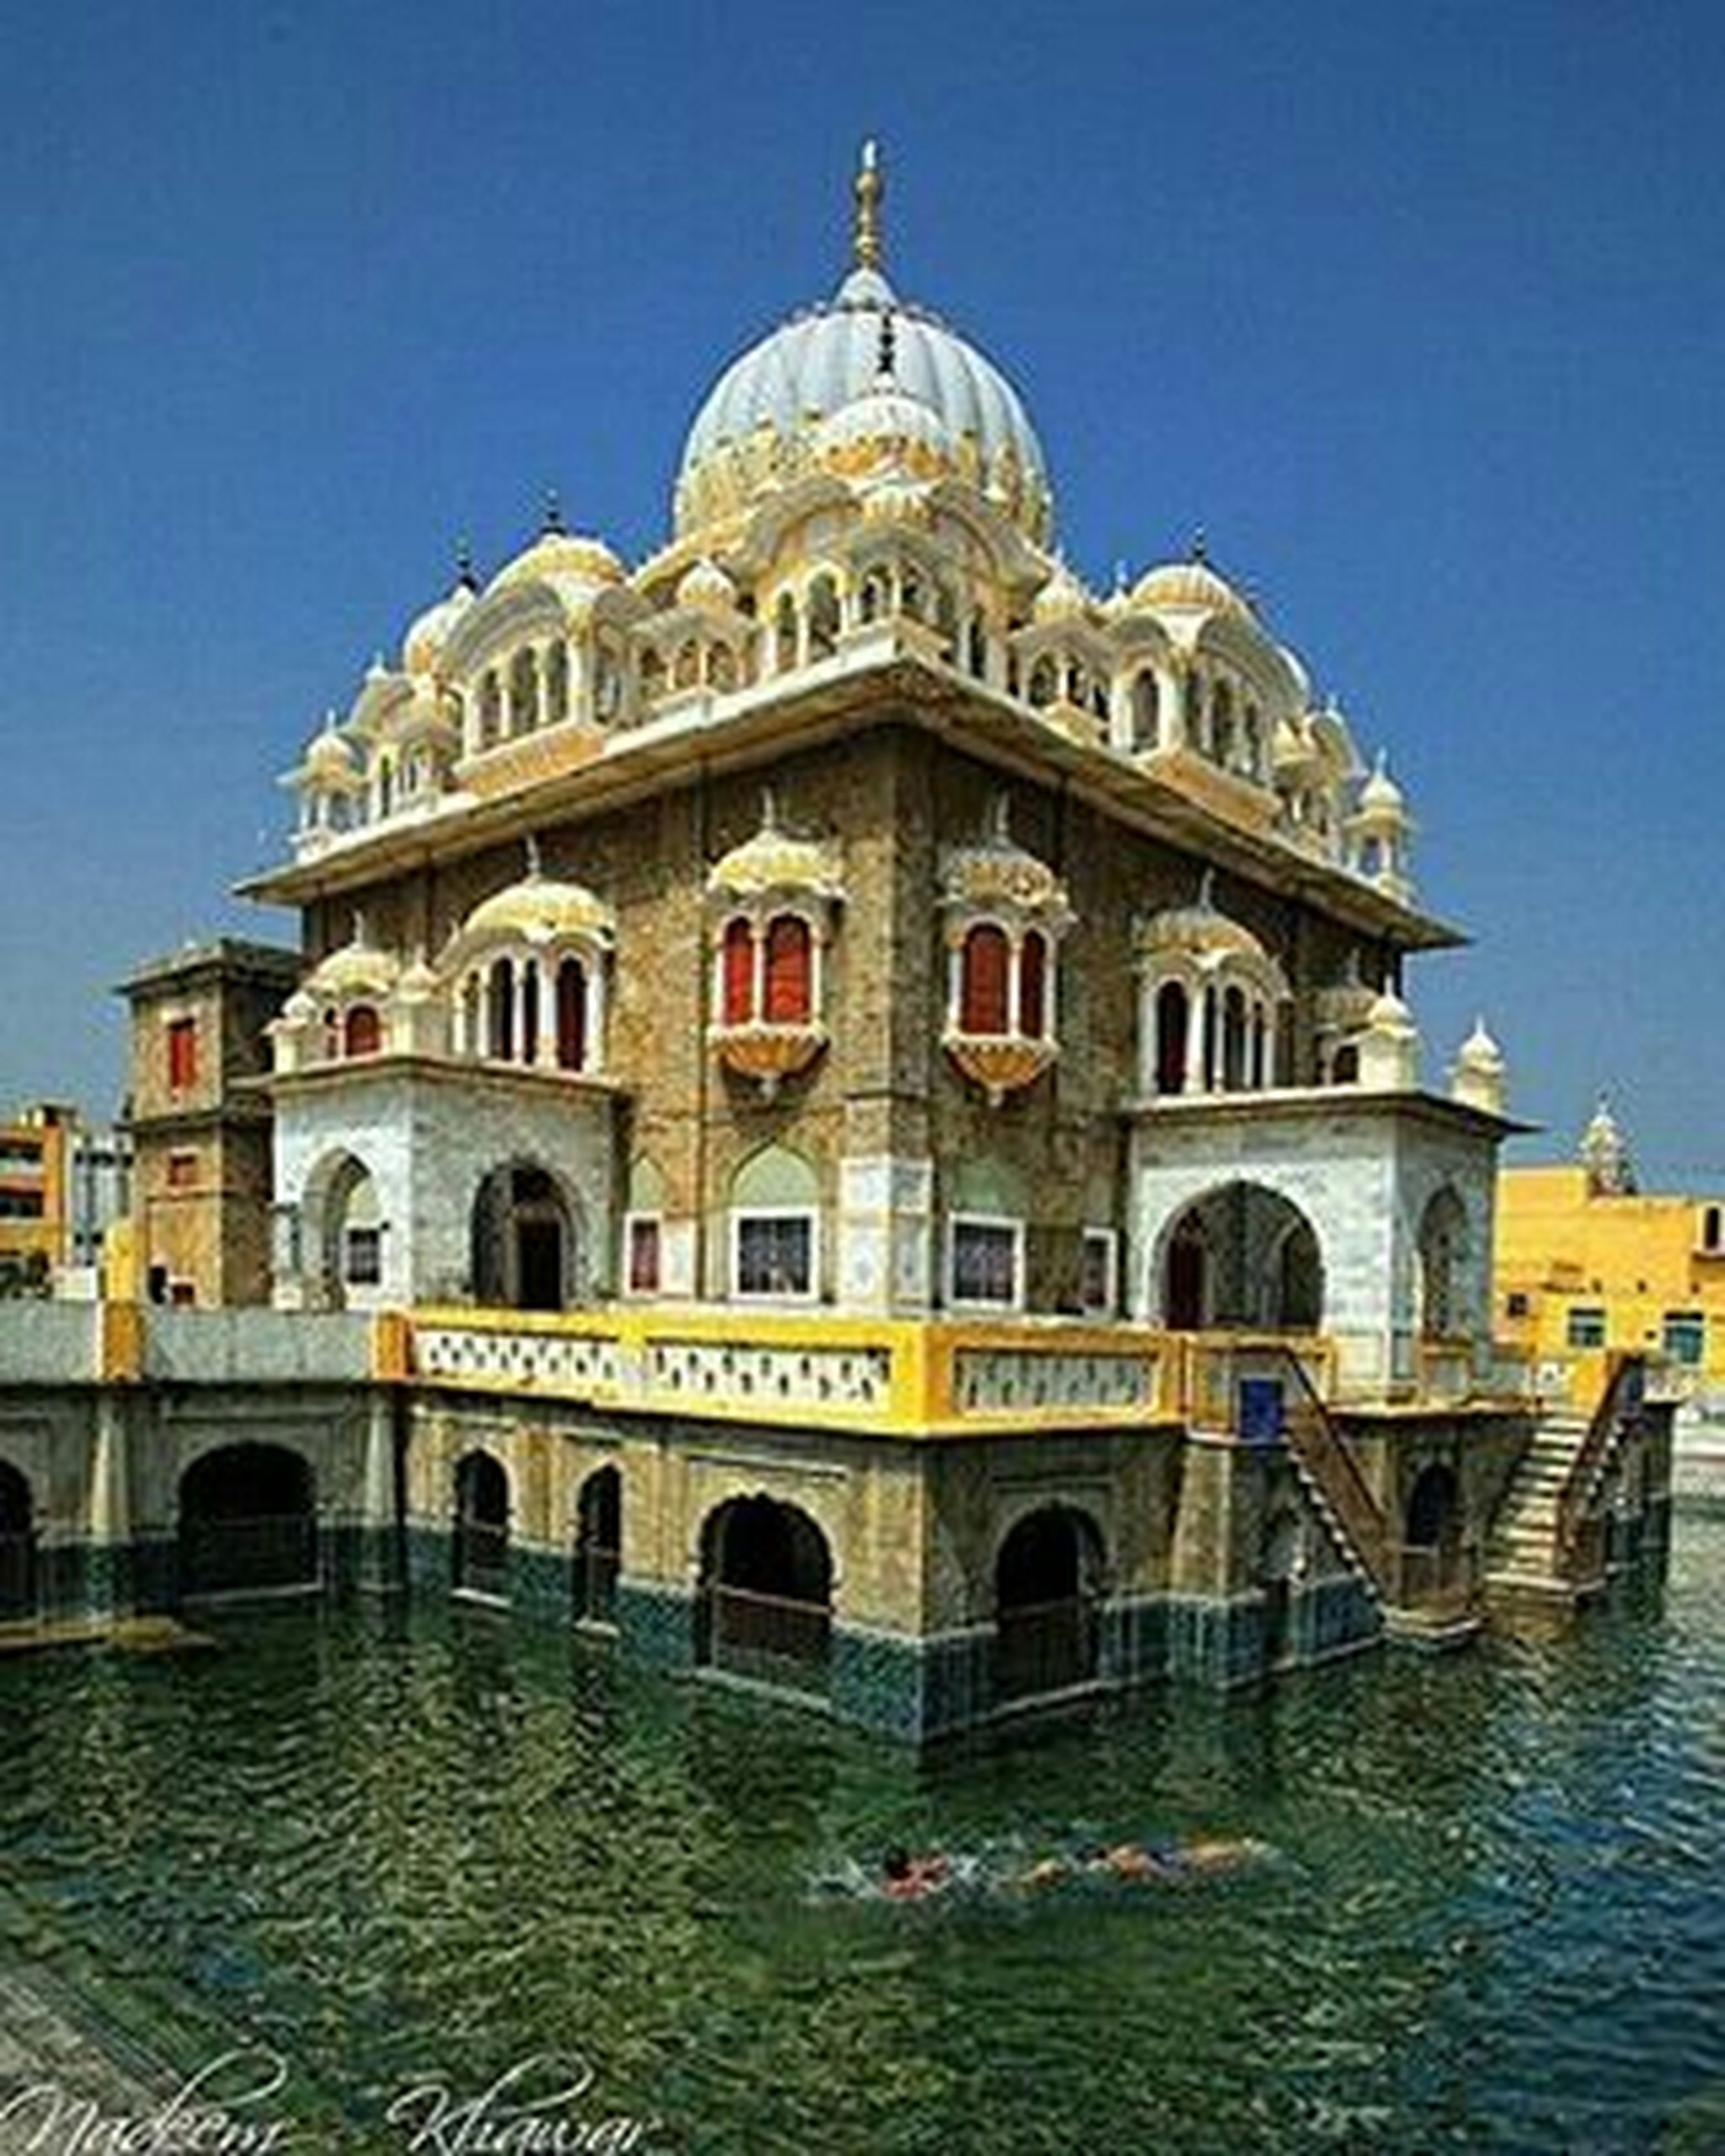 architecture, built structure, building exterior, water, famous place, dome, travel destinations, religion, clear sky, place of worship, tourism, waterfront, travel, spirituality, arch, church, blue, facade, history